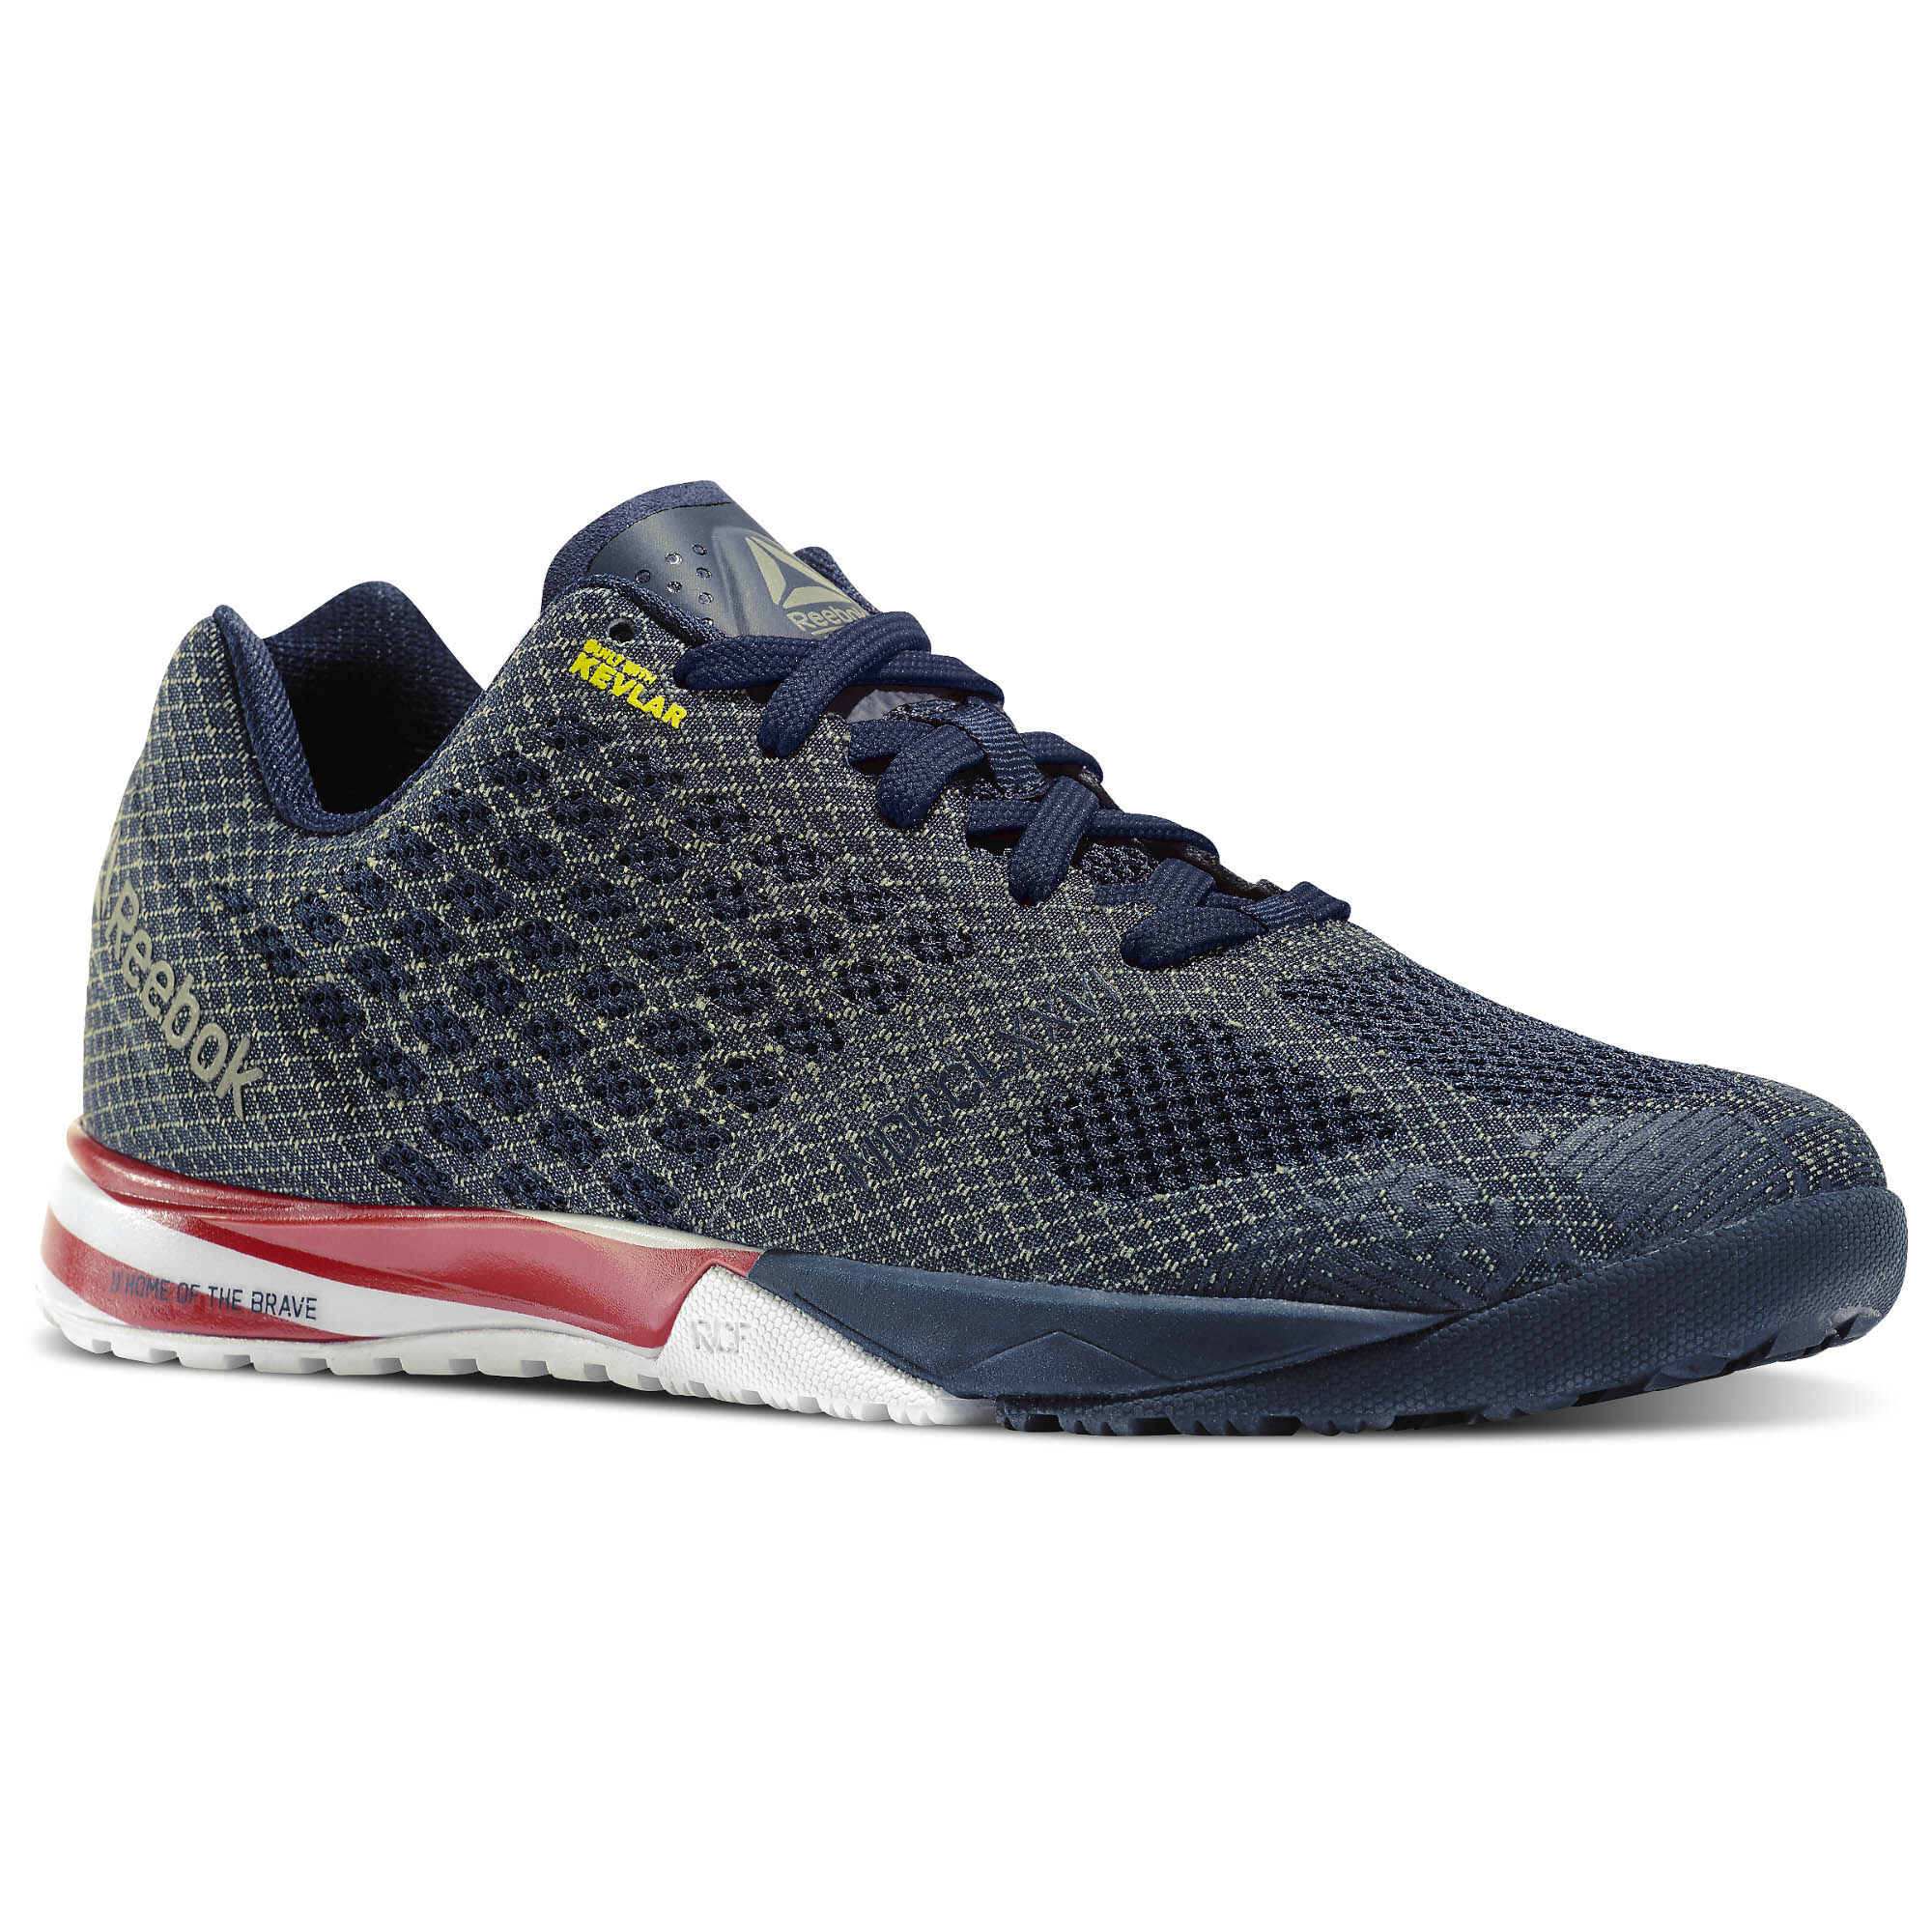 reebok 5.0 nano cheap   OFF57% The Largest Catalog Discounts 76b63674e